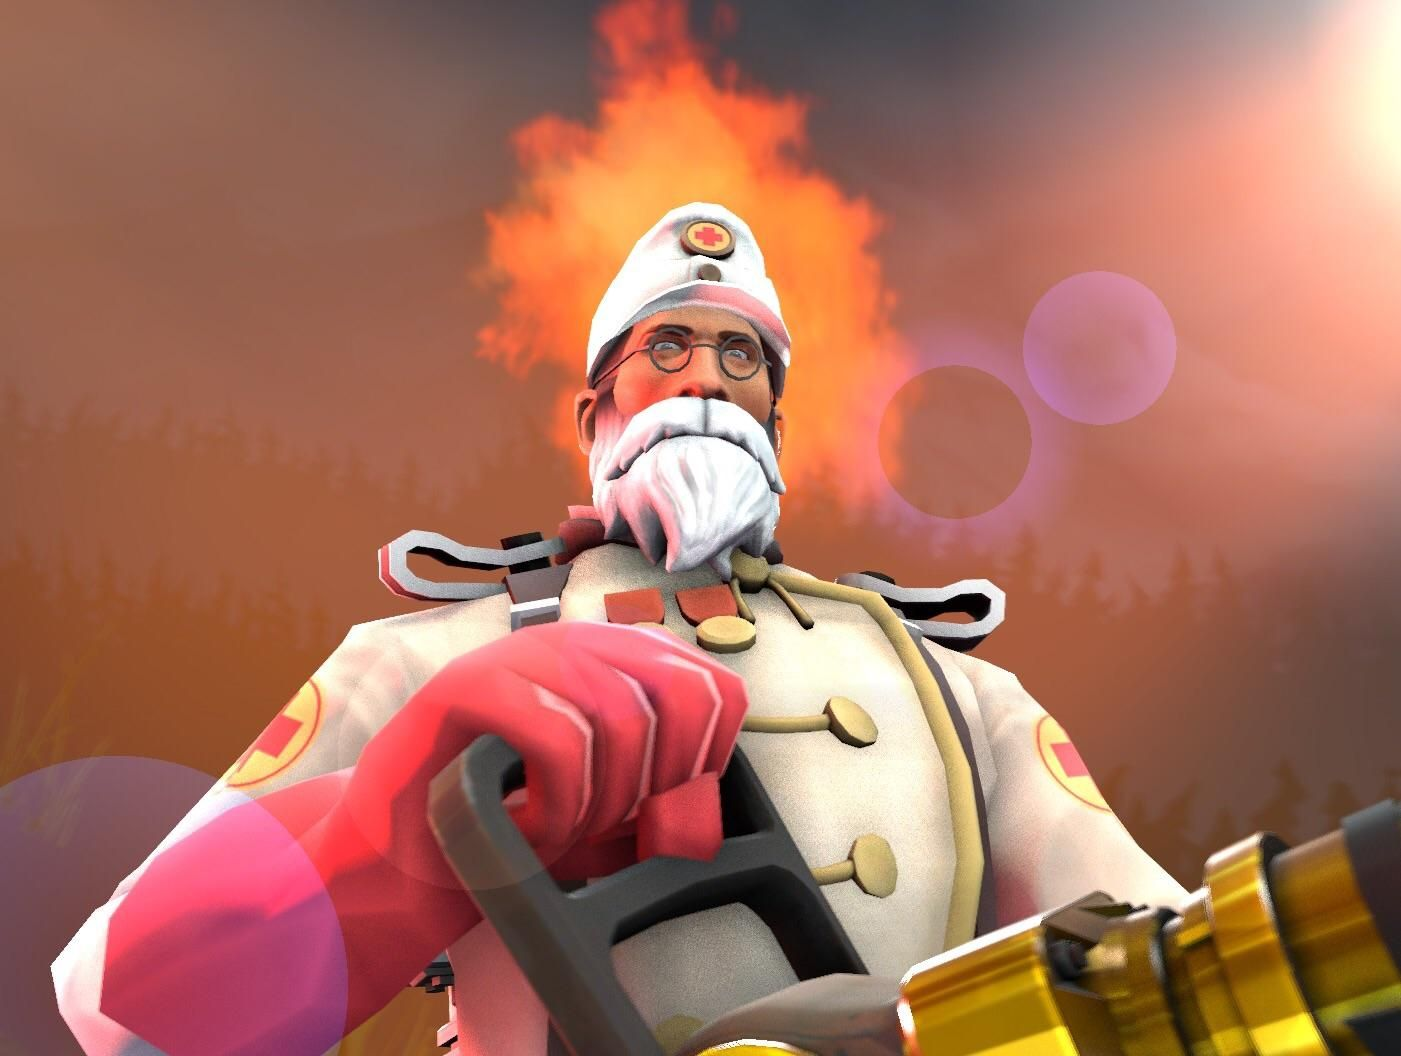 Commissioned a custom SFM profile picture from Sagerz with my medic